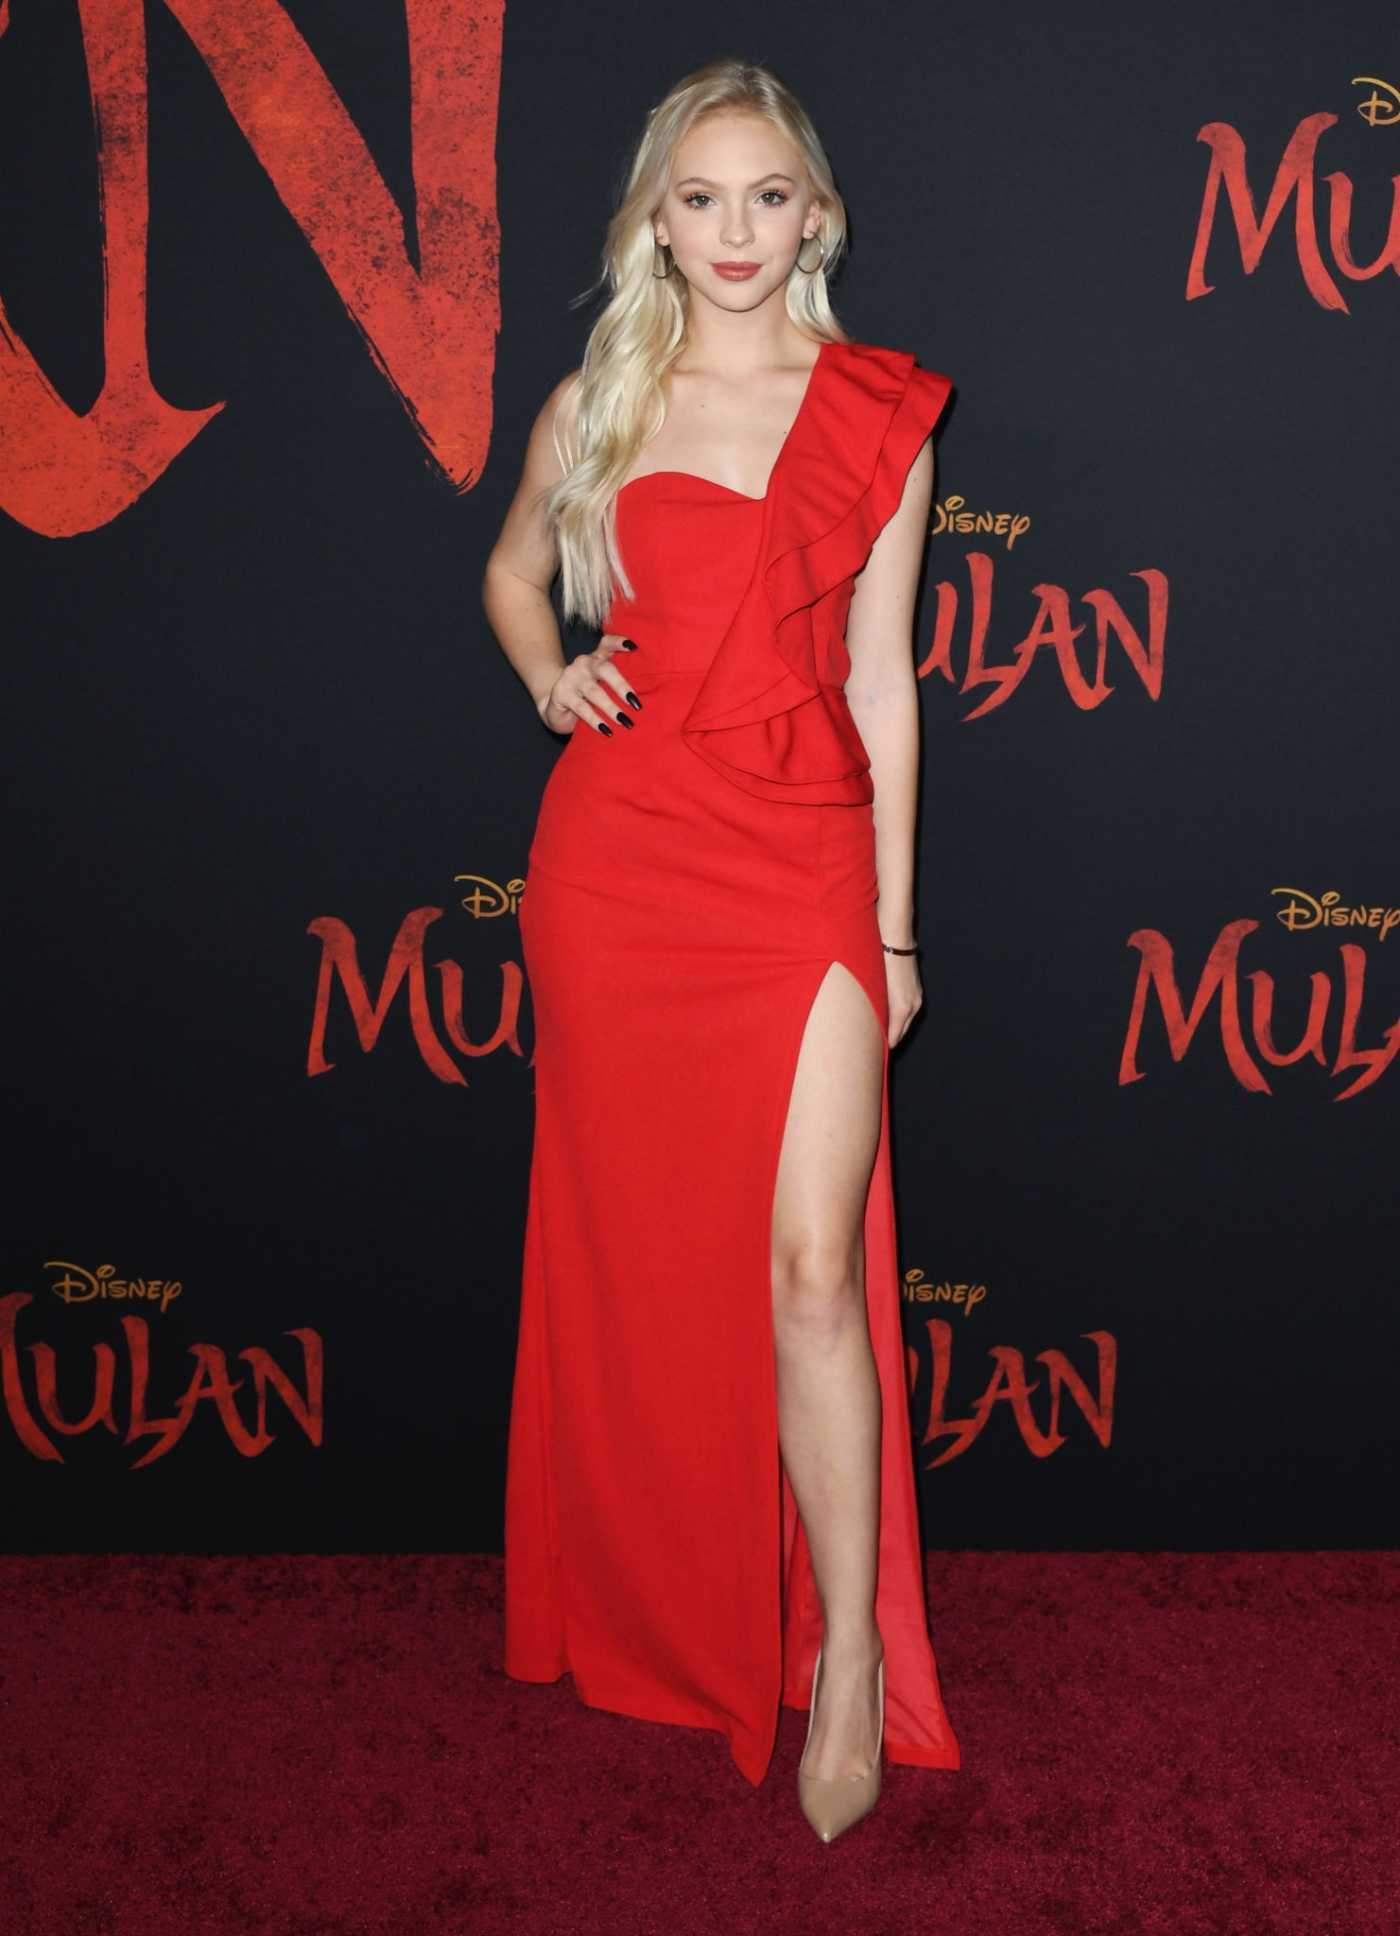 Jordyn Jones Attends the Mulan World Premiere in Hollywood 03/09/2020